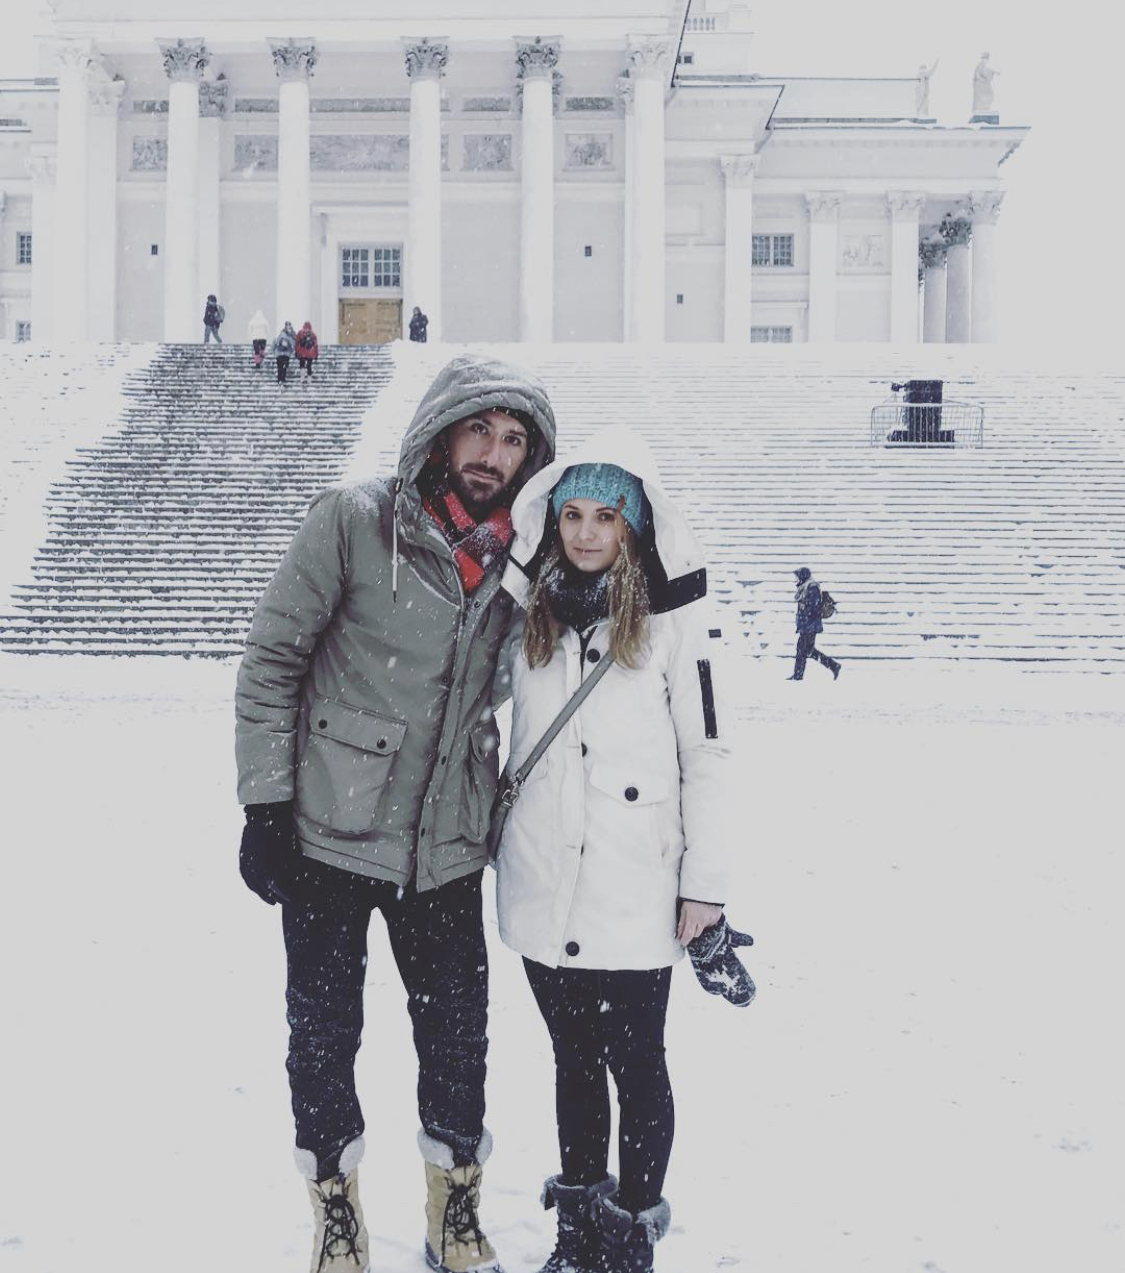 Tereza and Jon 90 Day Fiance with Permission